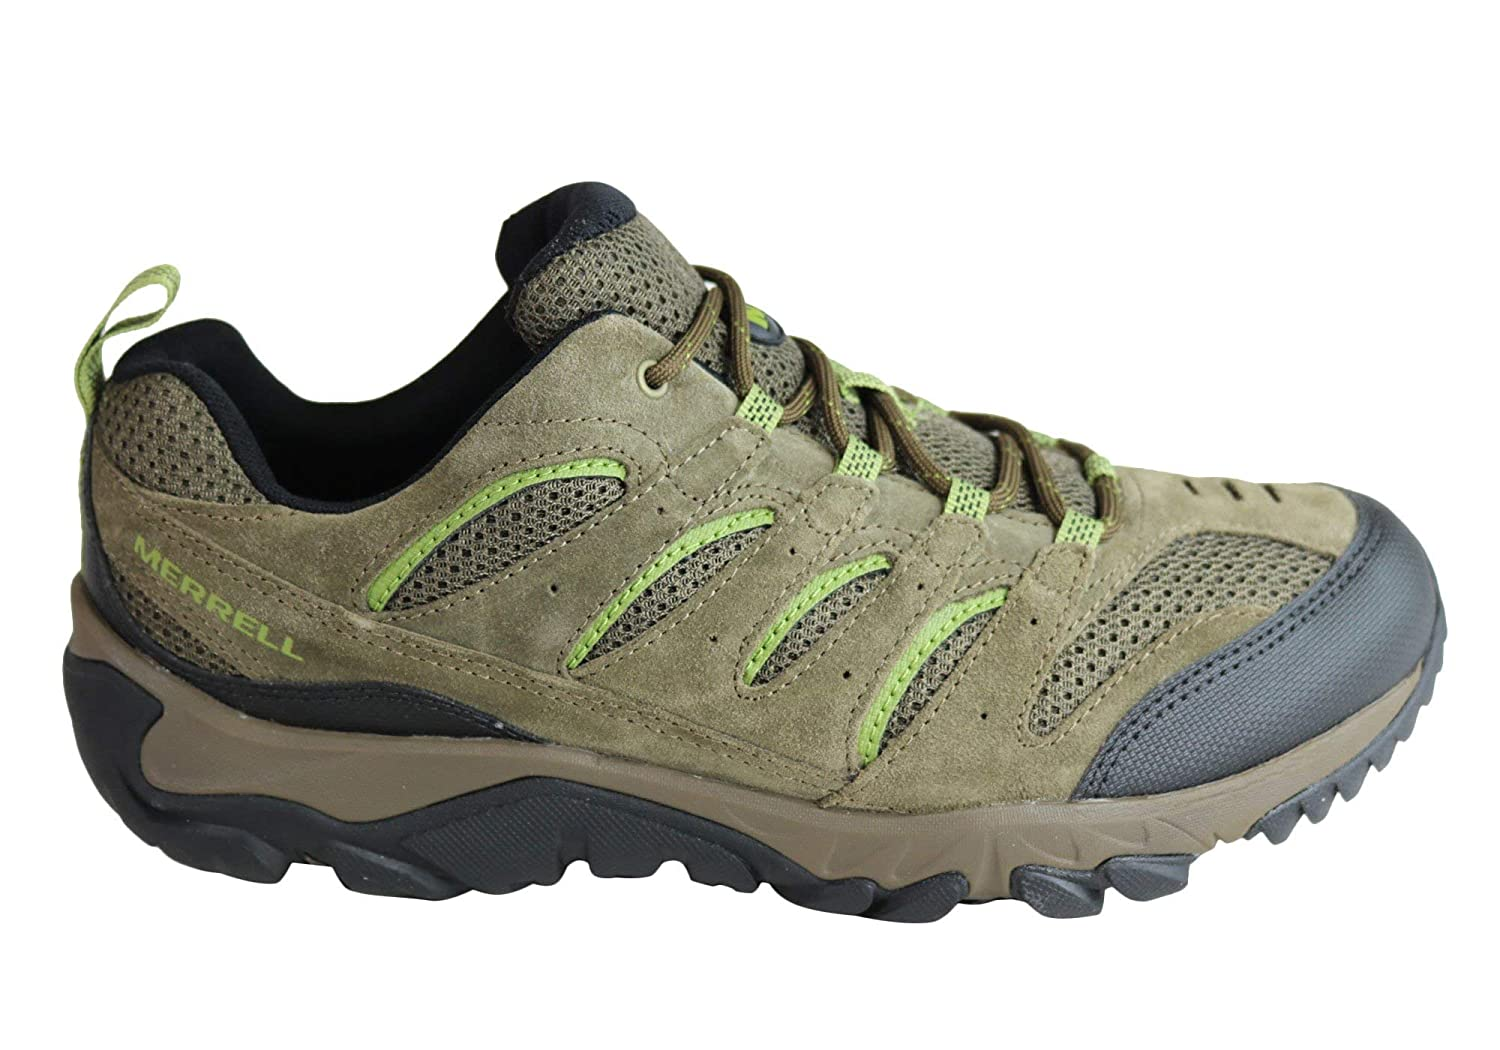 7e7bf988 Amazon.com | Merrell Mens Canteen Low Top Lace Up Walking Shoes ...